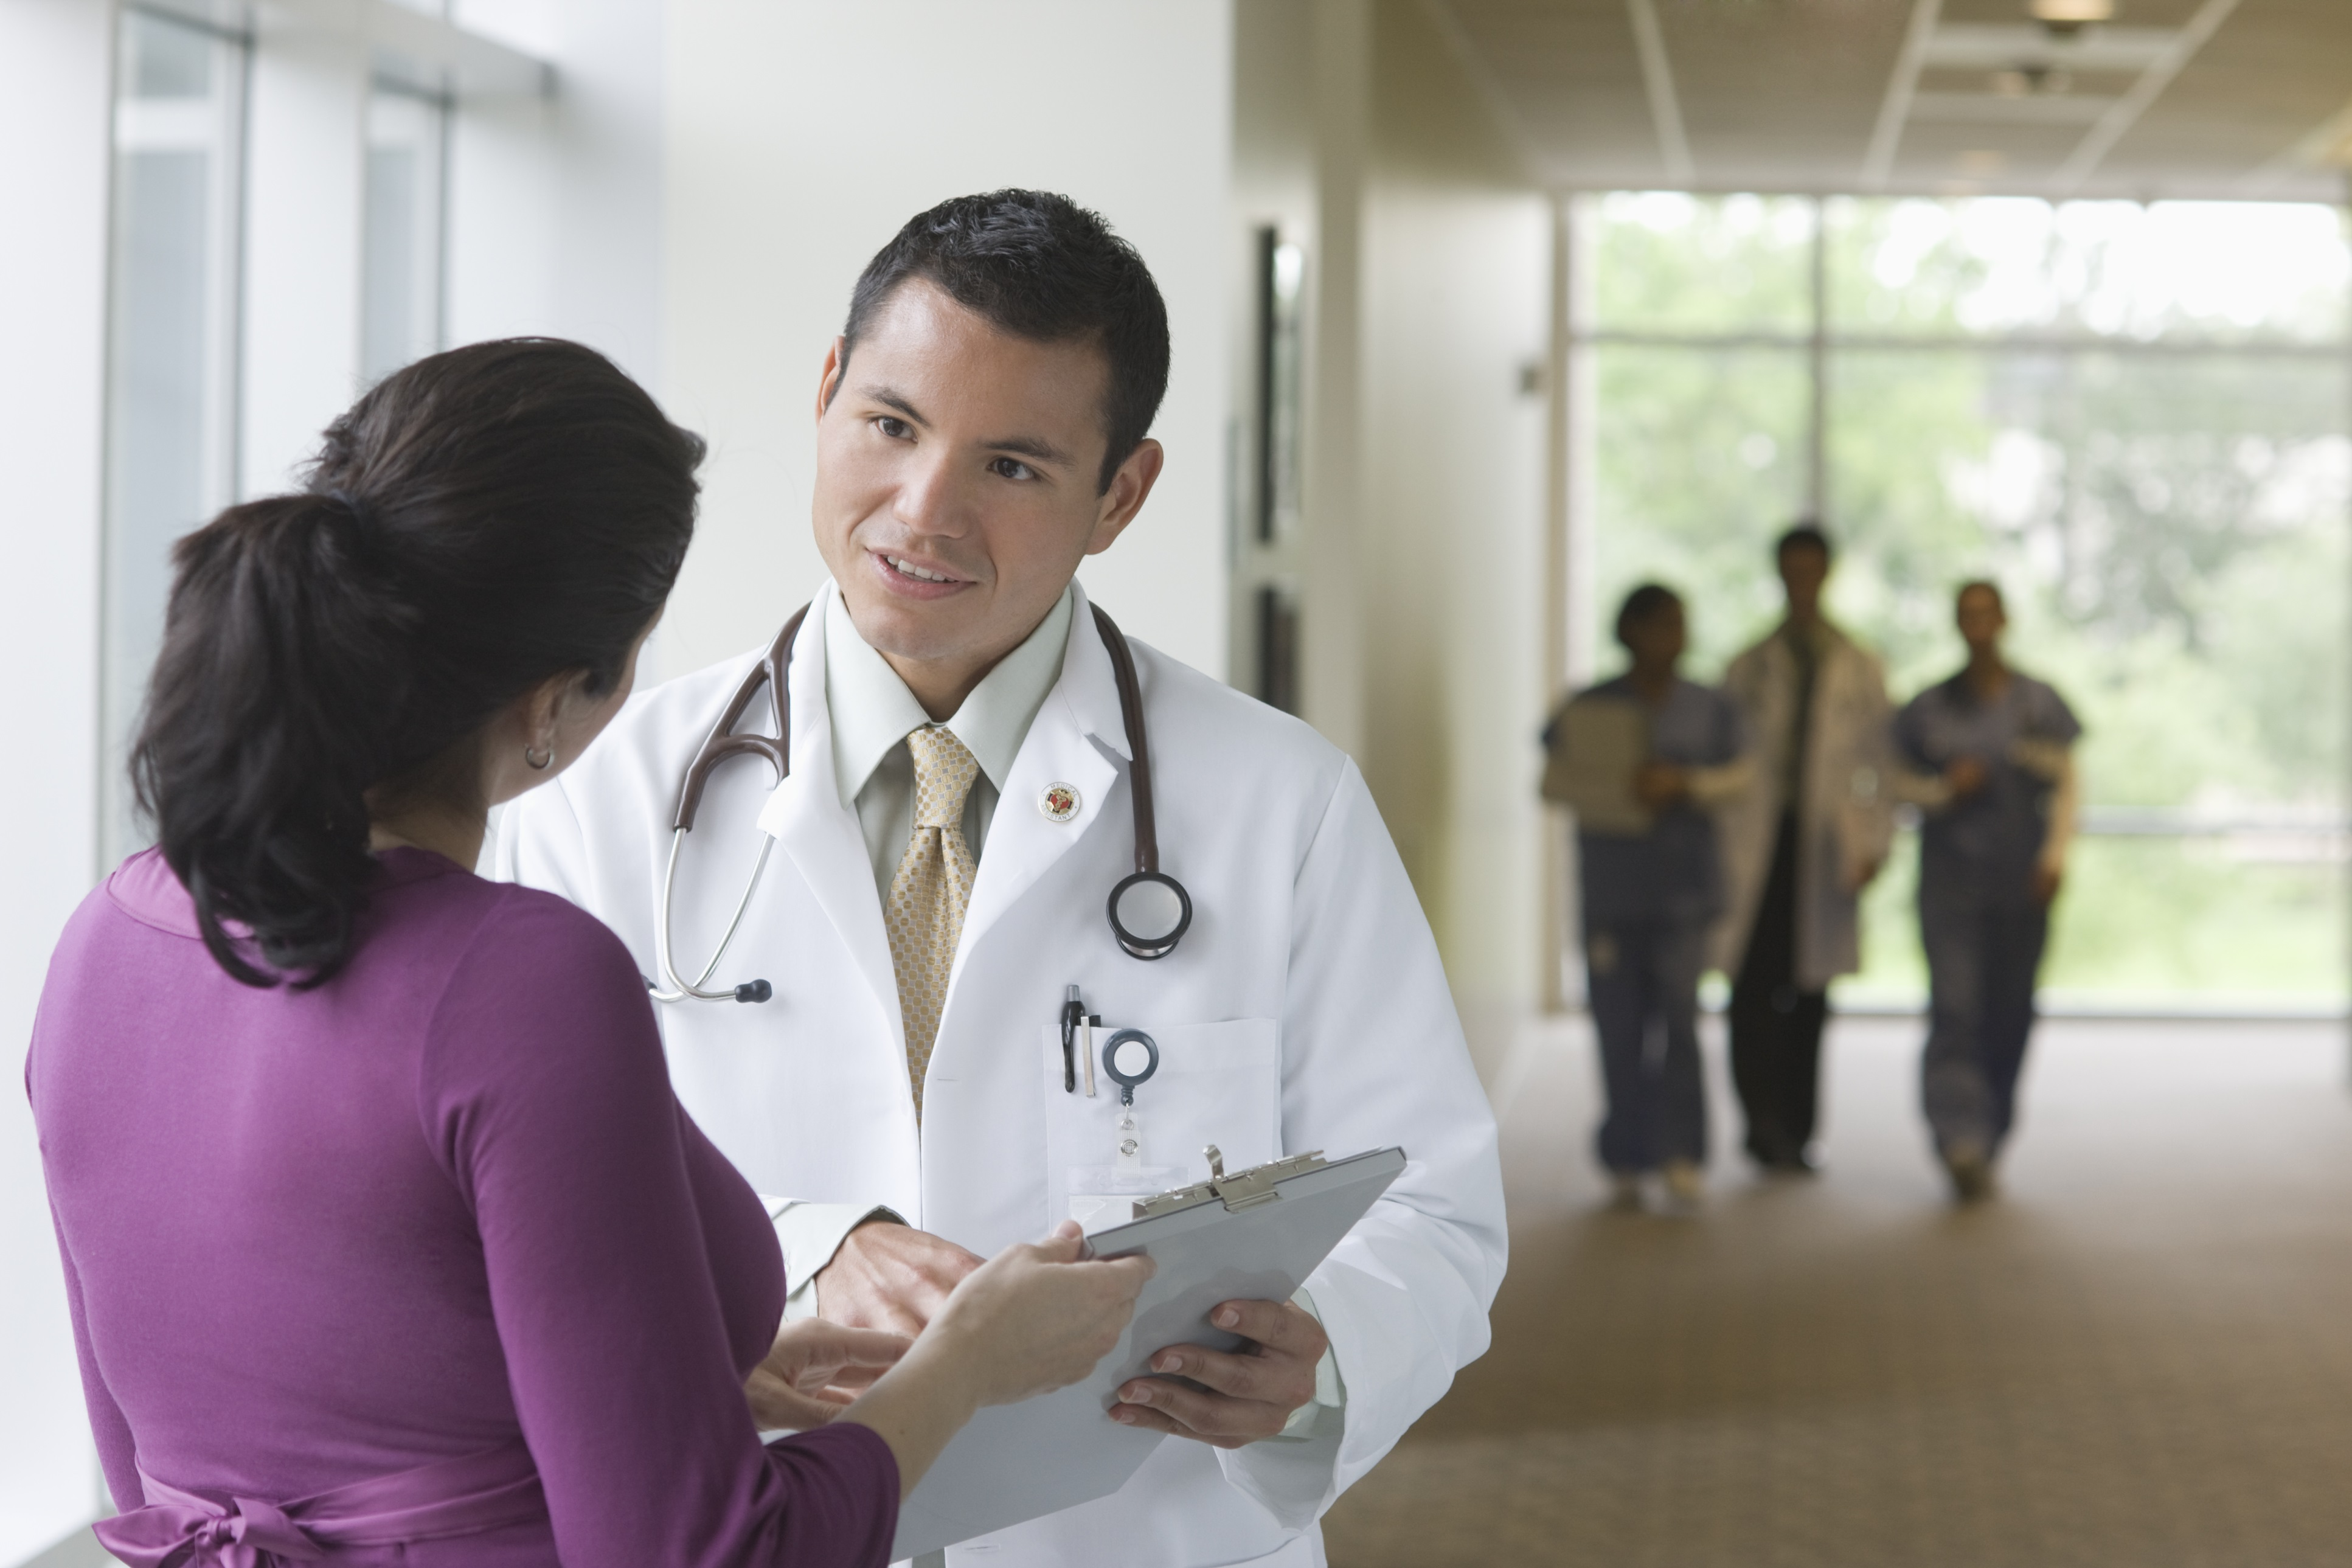 If I major in Psychology, how can I complete the prerequisites for medical school?